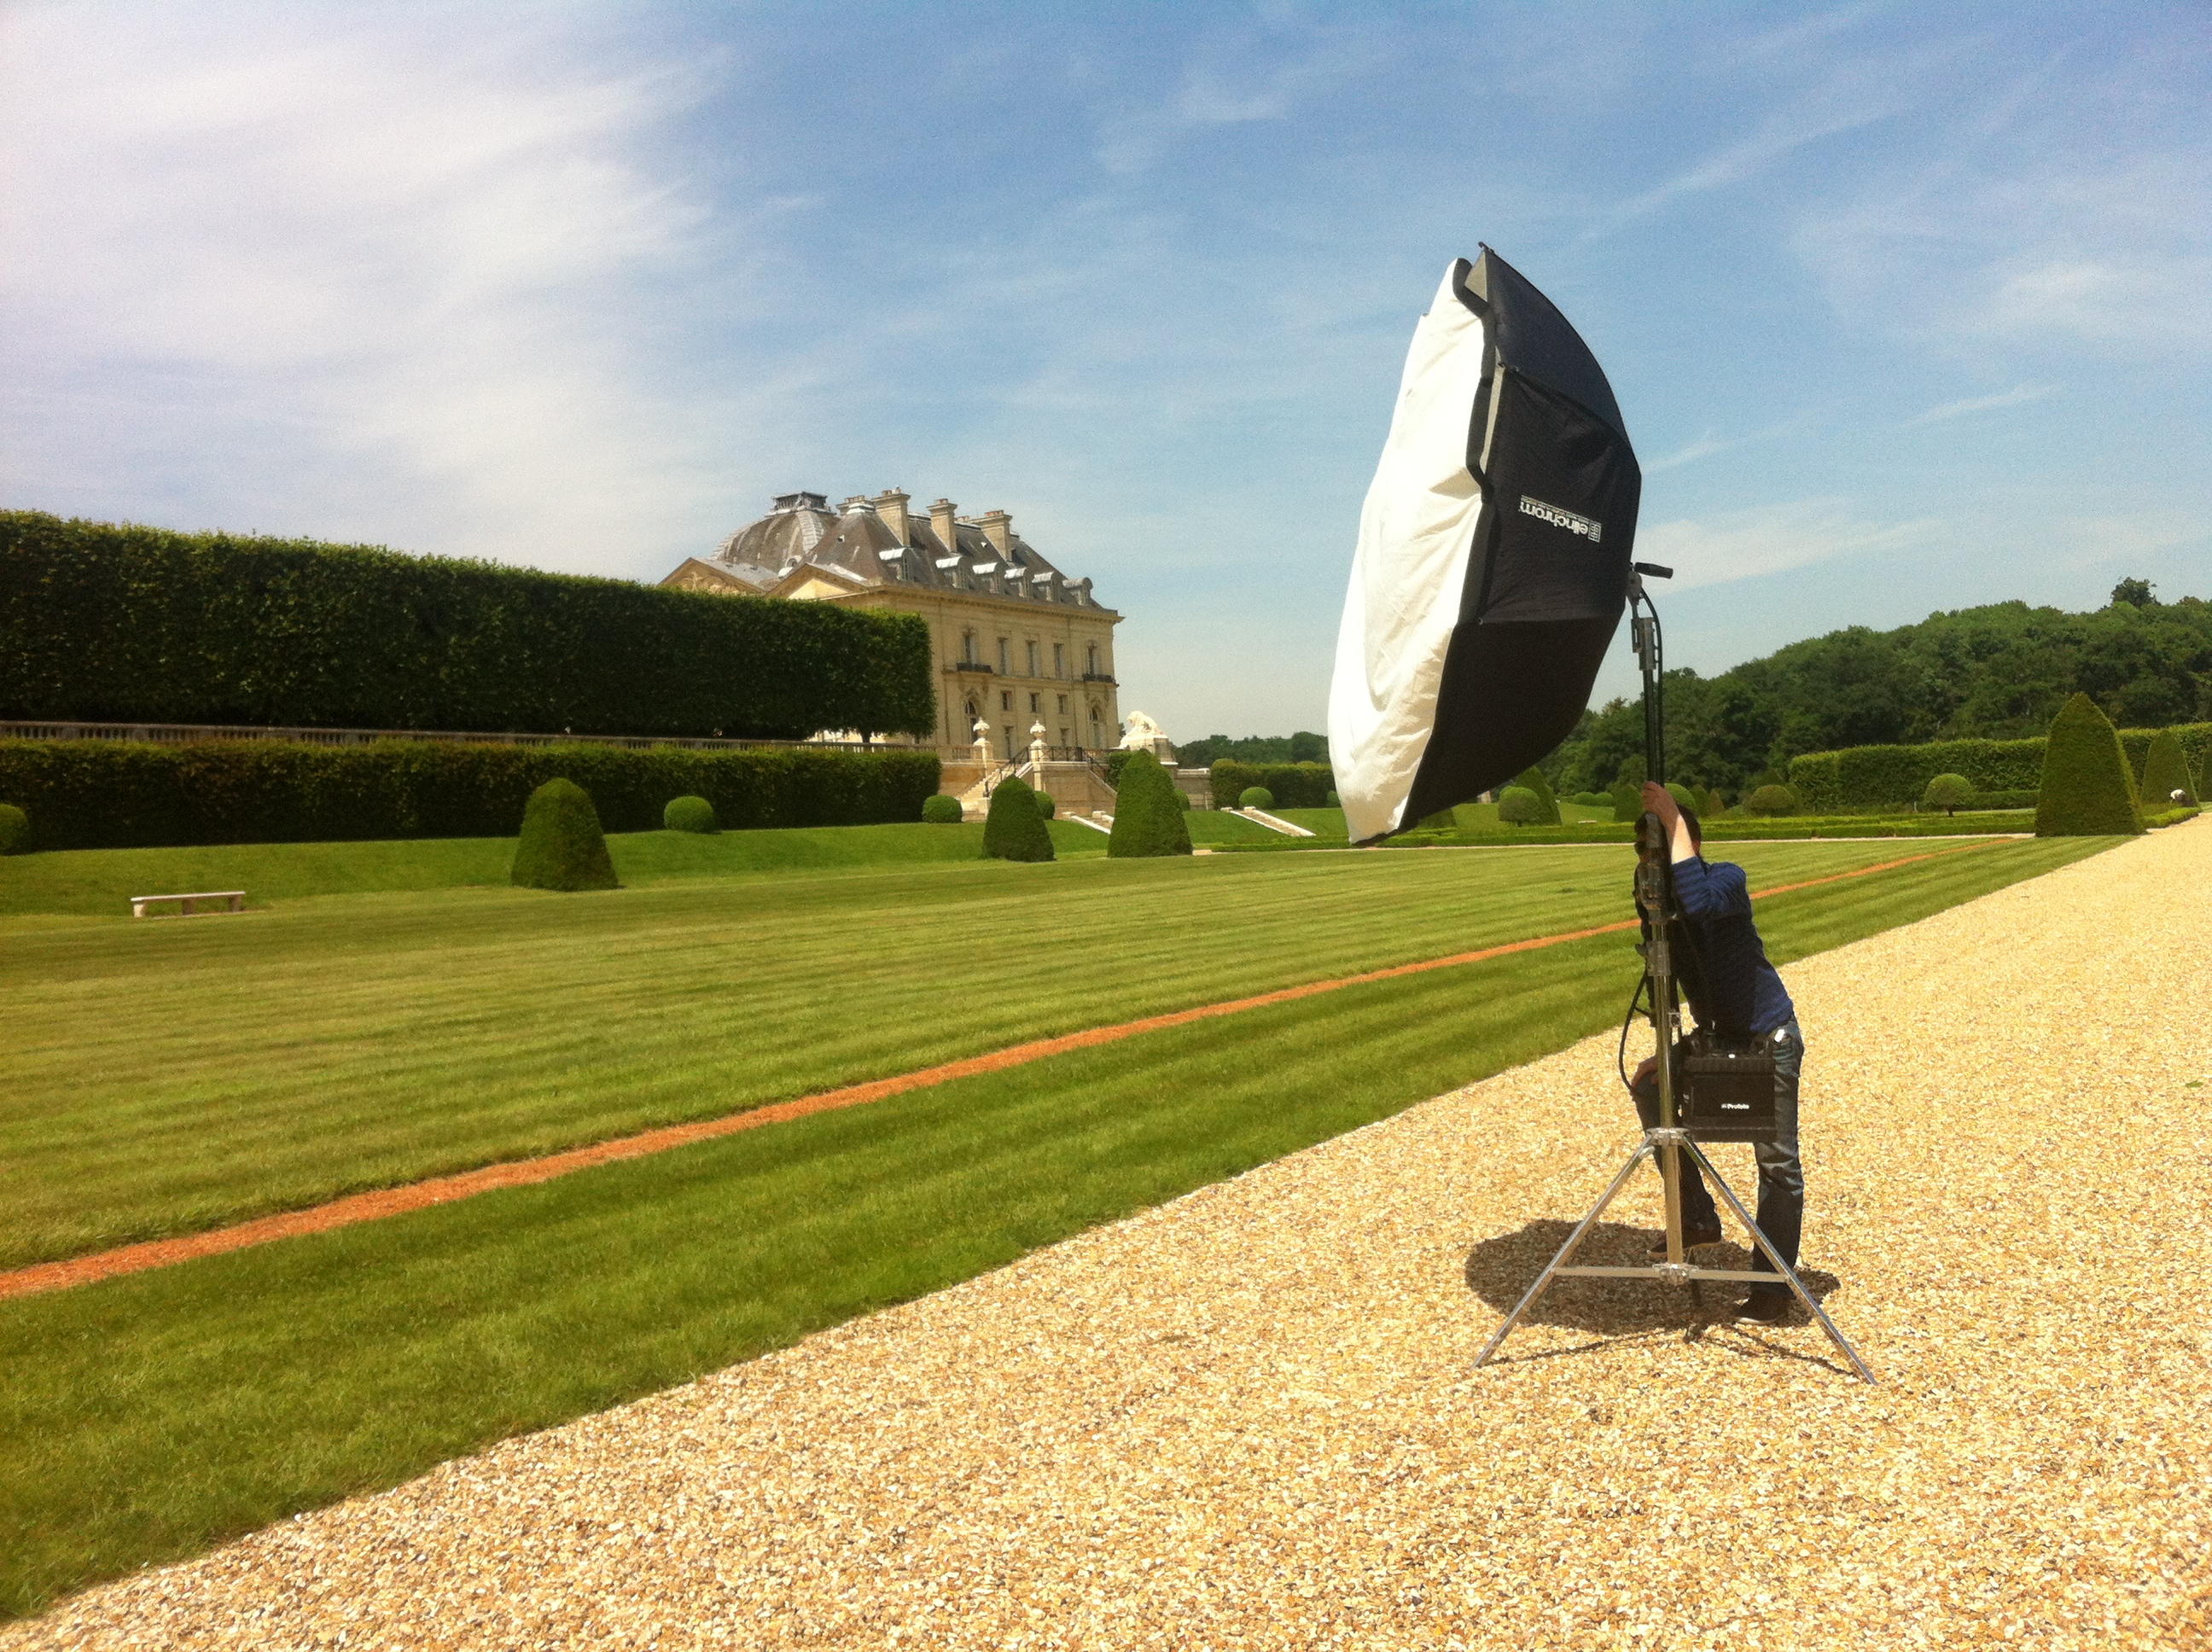 Film production service in France